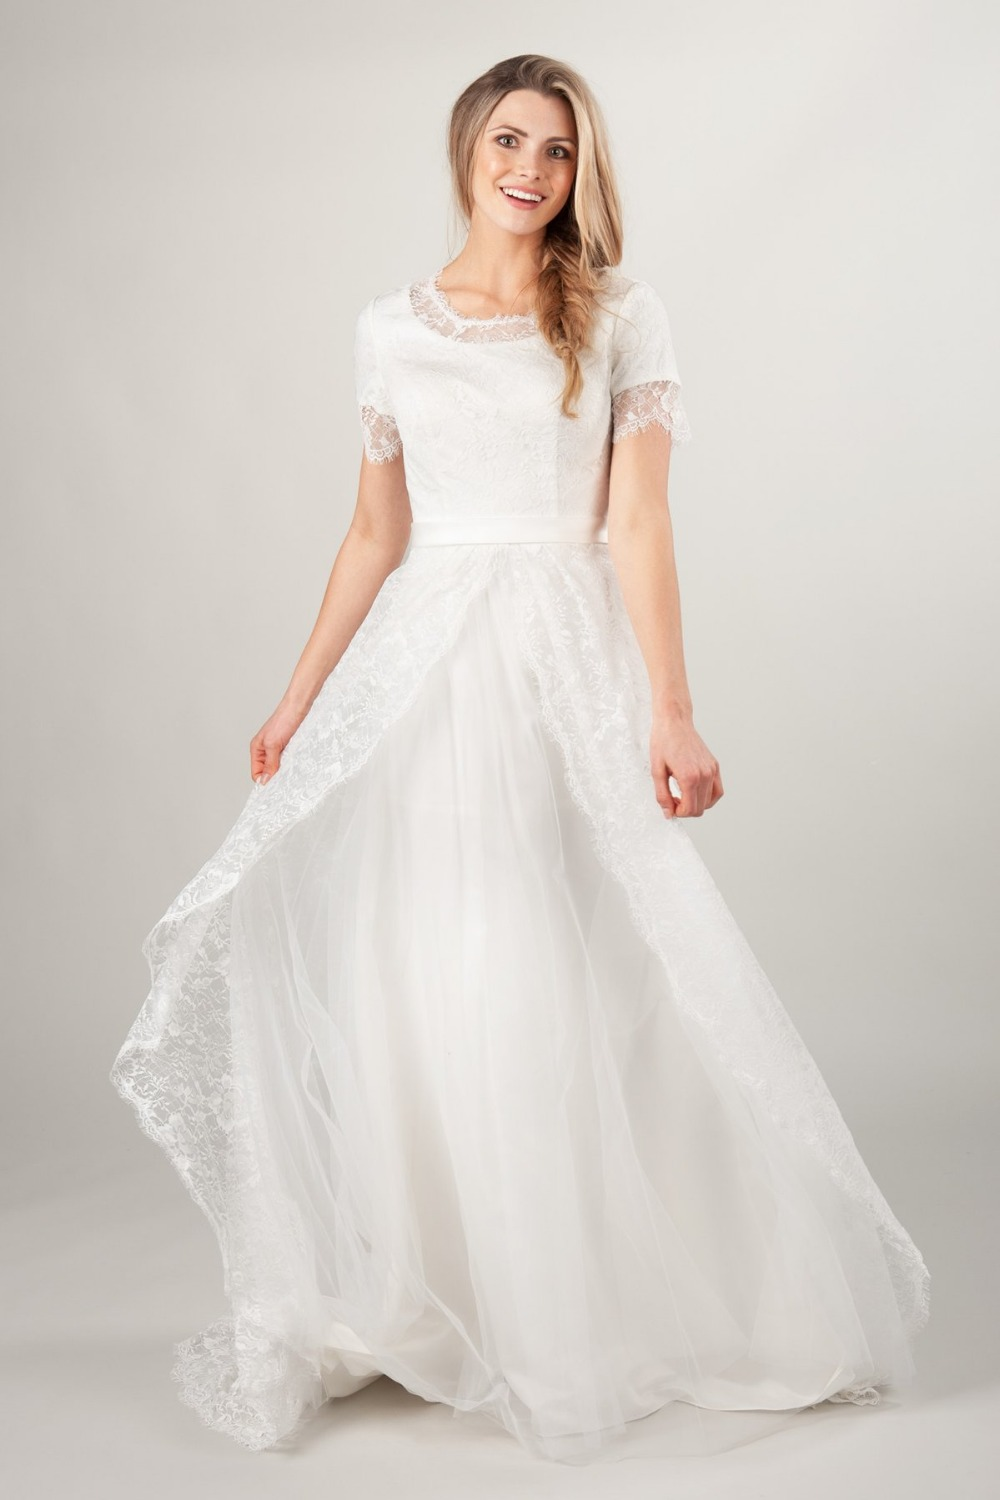 2019 New A Line Lace Tulle Long Modest Wedding Dresses With Short